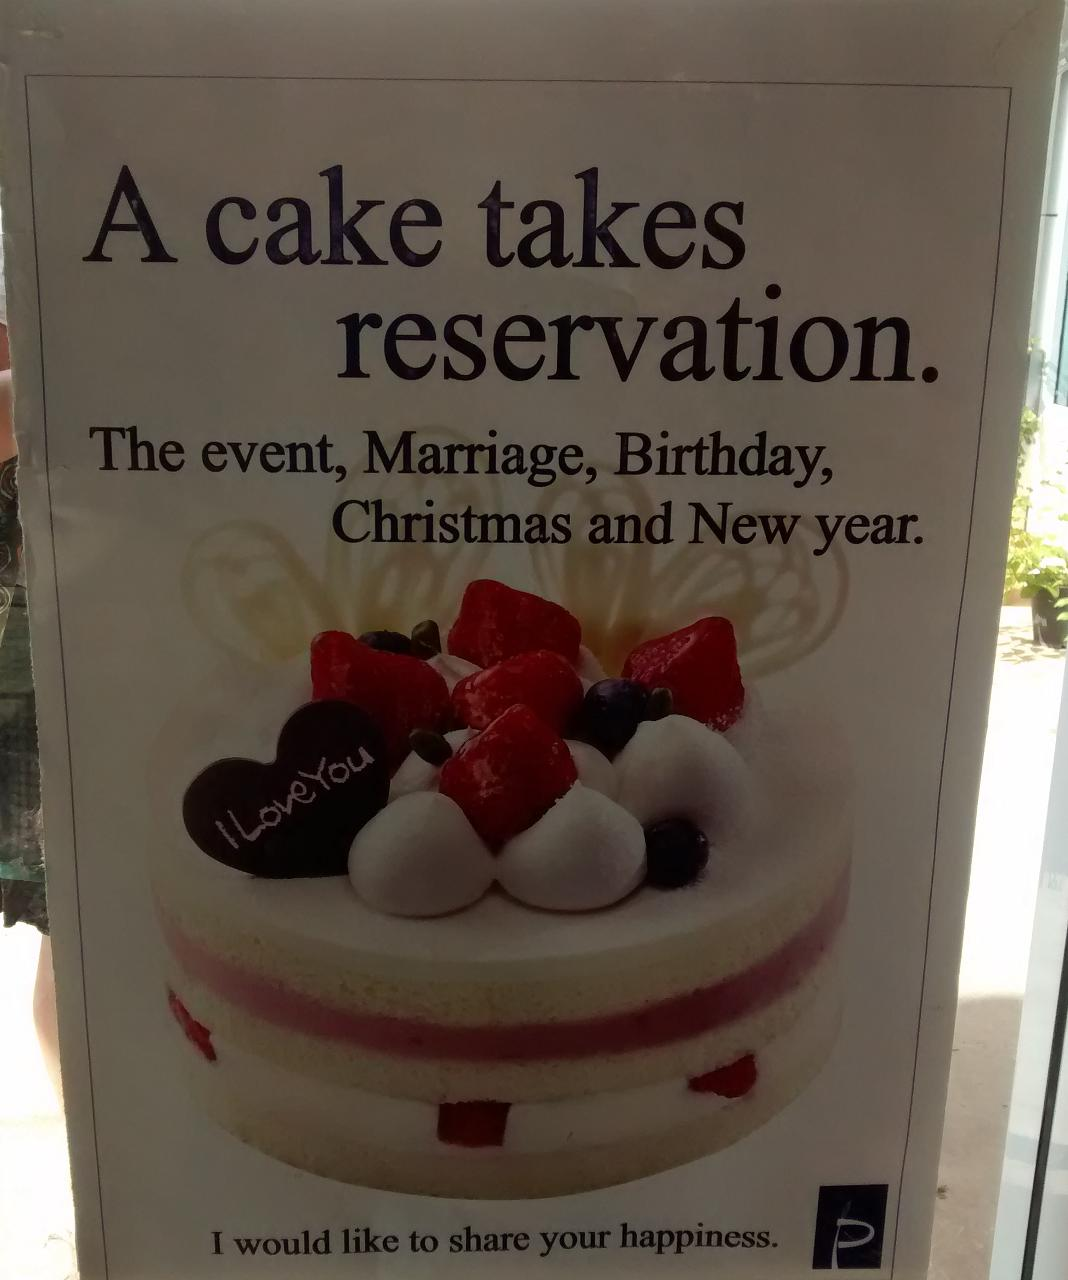 A cake takes reservation